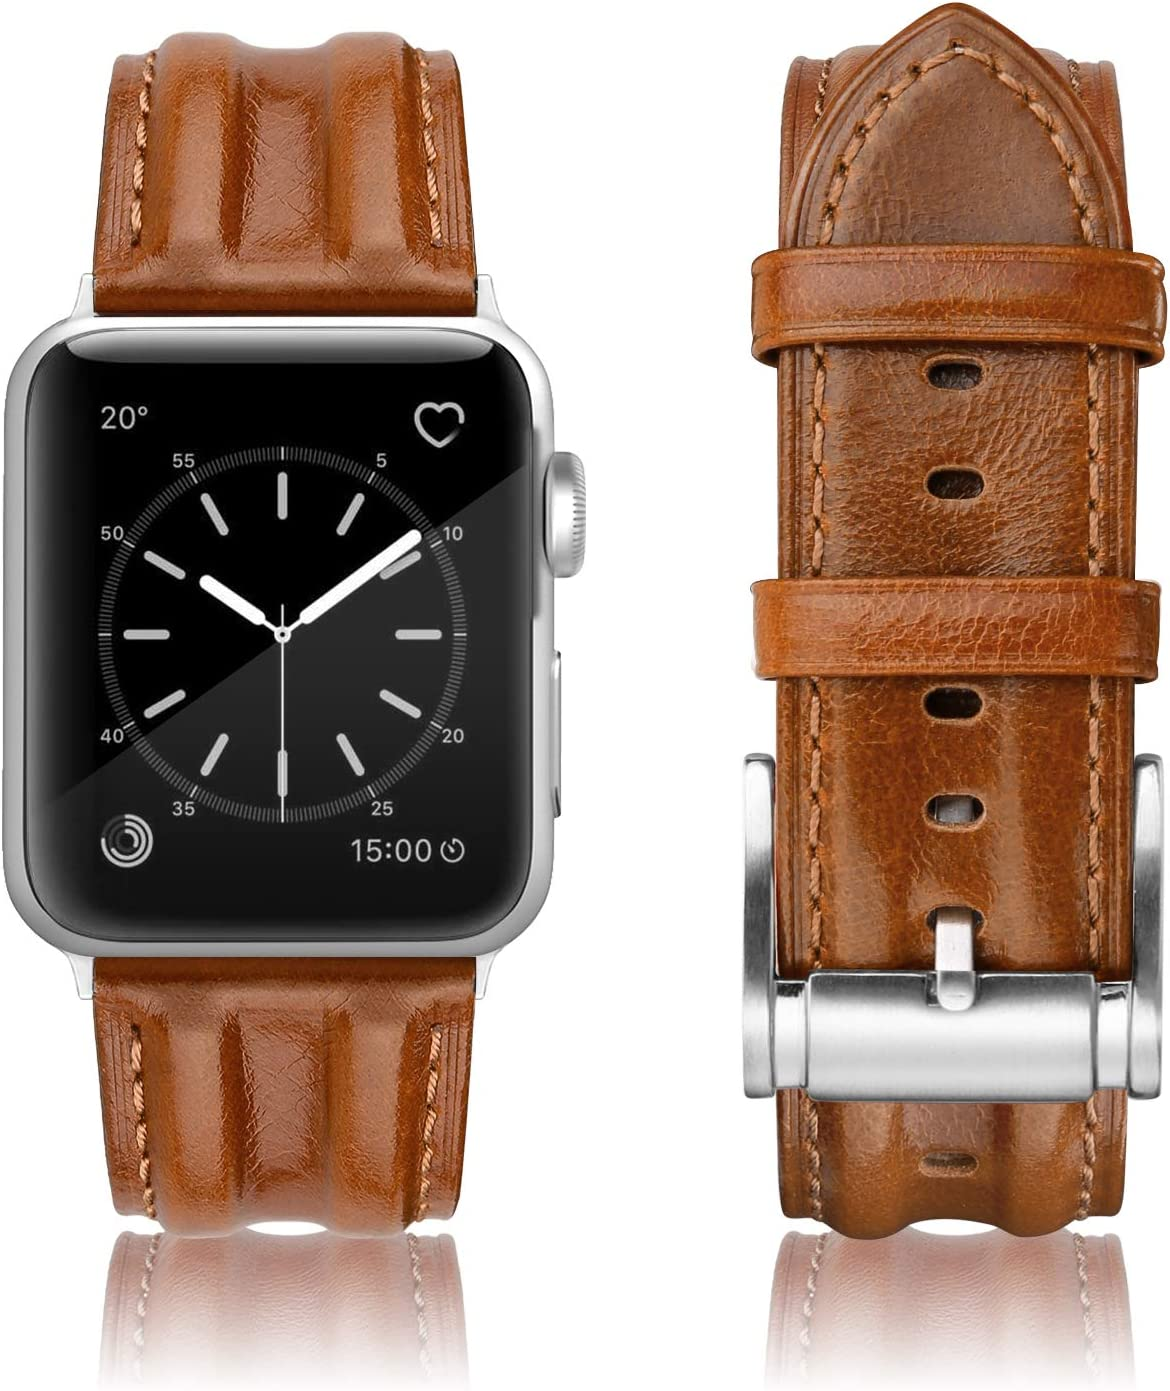 SWEES Leather Band Compatible with iWatch 42mm 44mm, Genuine Leather Classic Strap Wristband Compatible for Watch Series 6, Series 5, Series 4, Series 3, Series 2, Series 1, SE Sports & Edition Men, Retro Saddle Brown